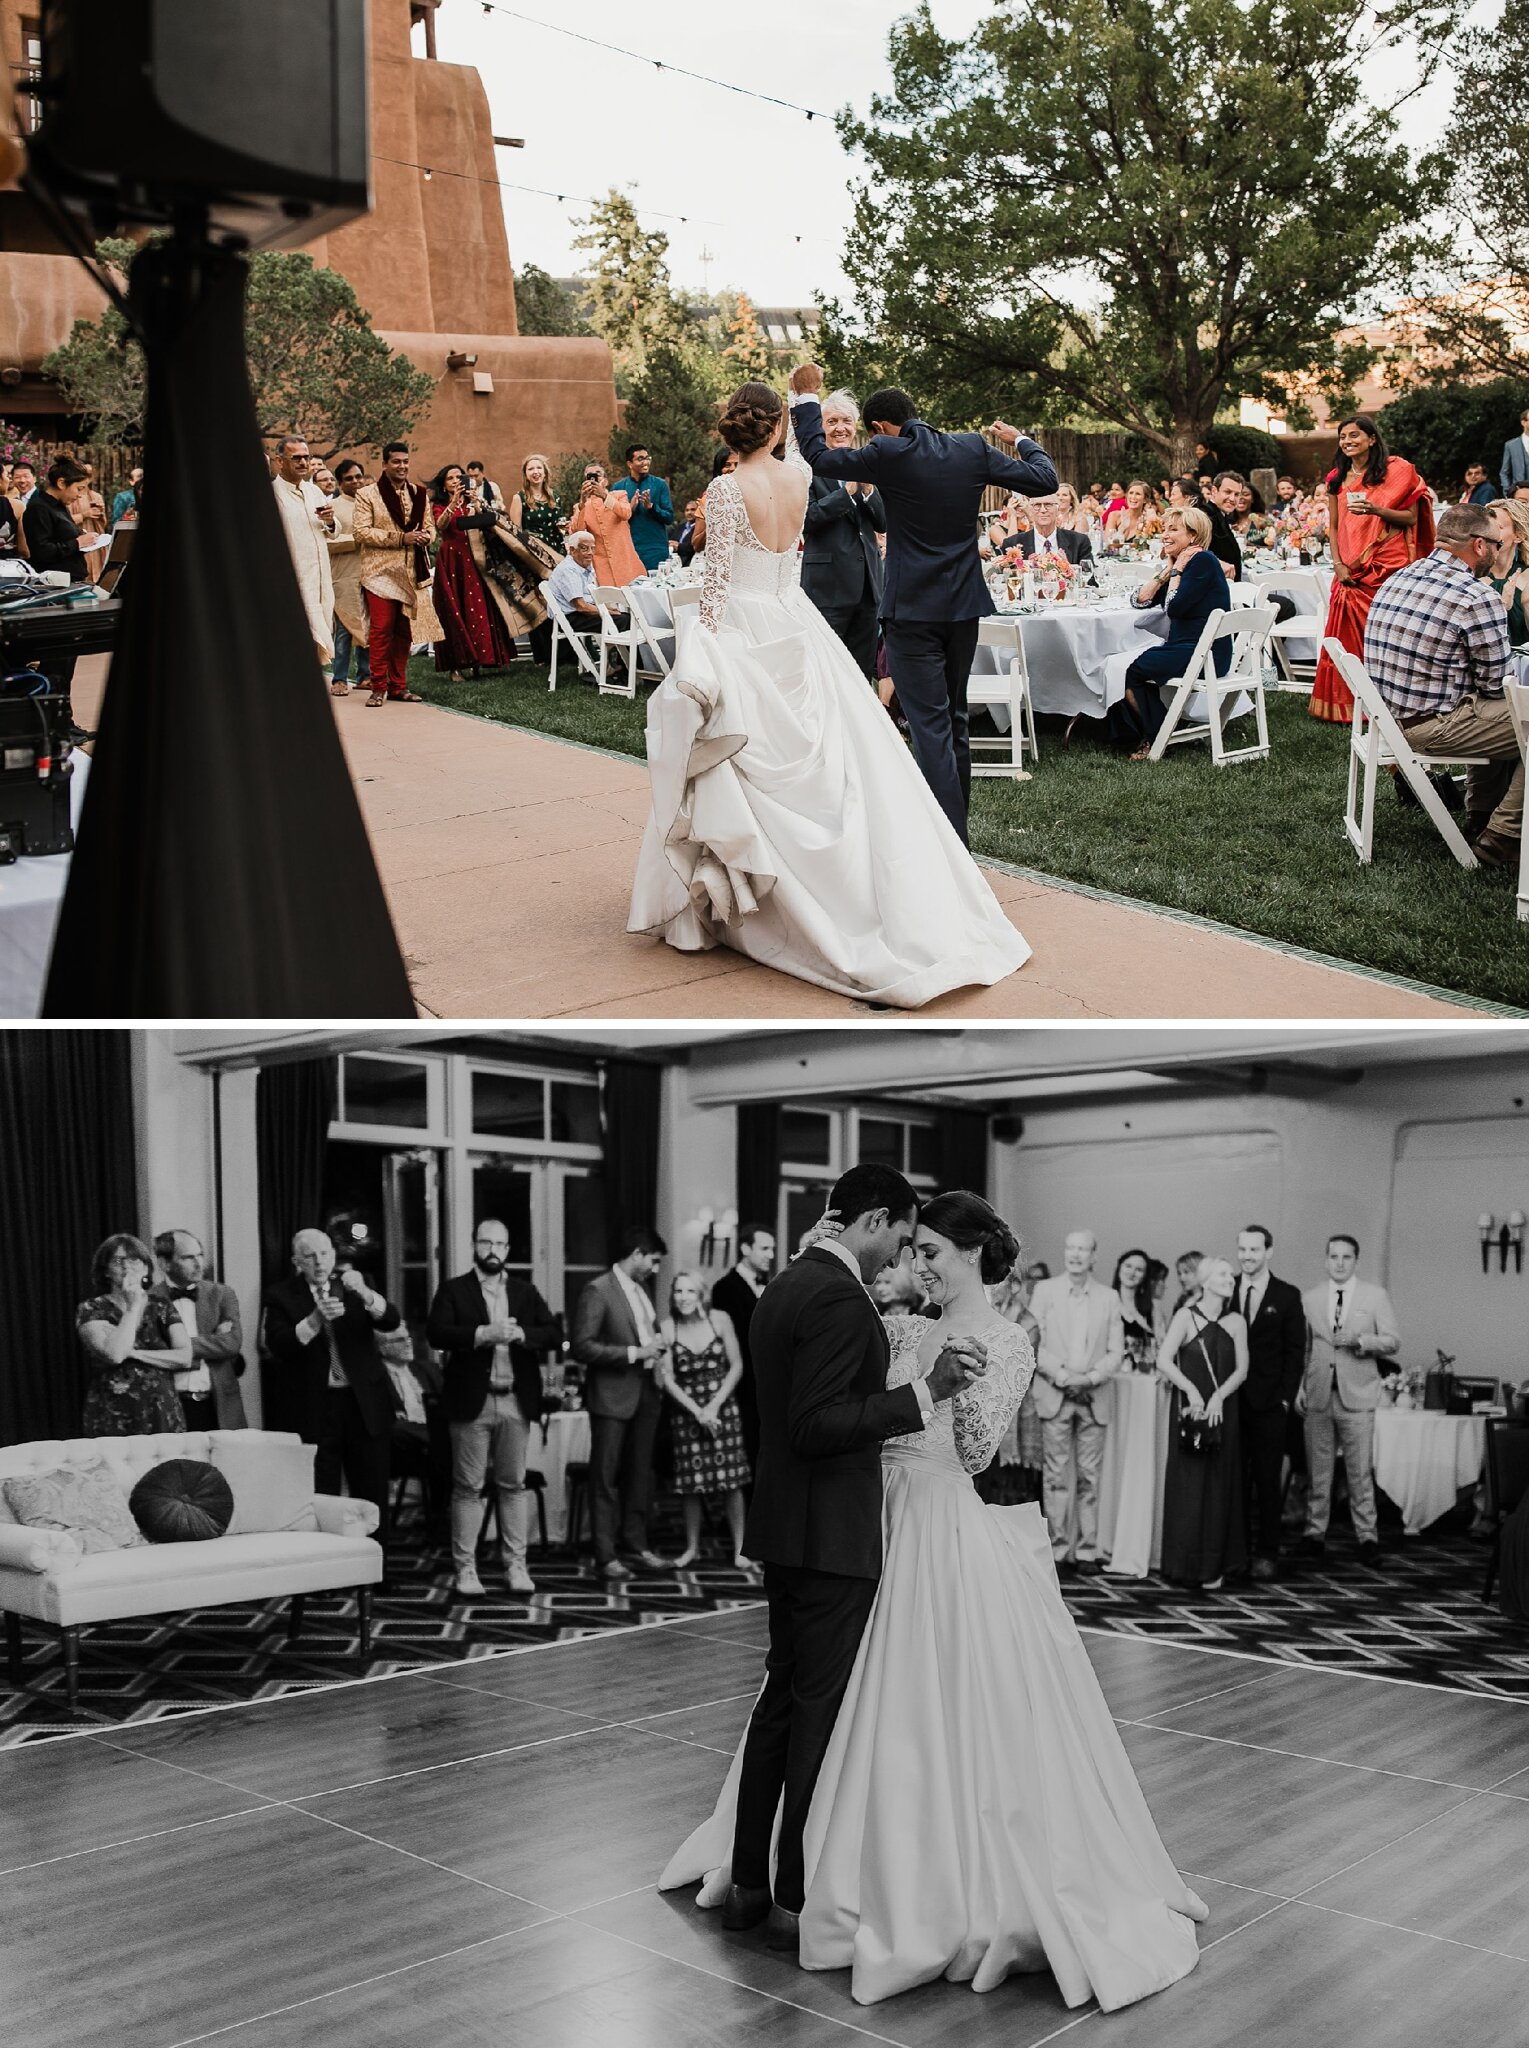 Alicia+lucia+photography+-+albuquerque+wedding+photographer+-+santa+fe+wedding+photography+-+new+mexico+wedding+photographer+-+new+mexico+wedding+-+wedding+-+bridal+gown+-+wedding+gown+-+ballgown+wedding+gown+-+ballgown+bridal+gown_0011.jpg